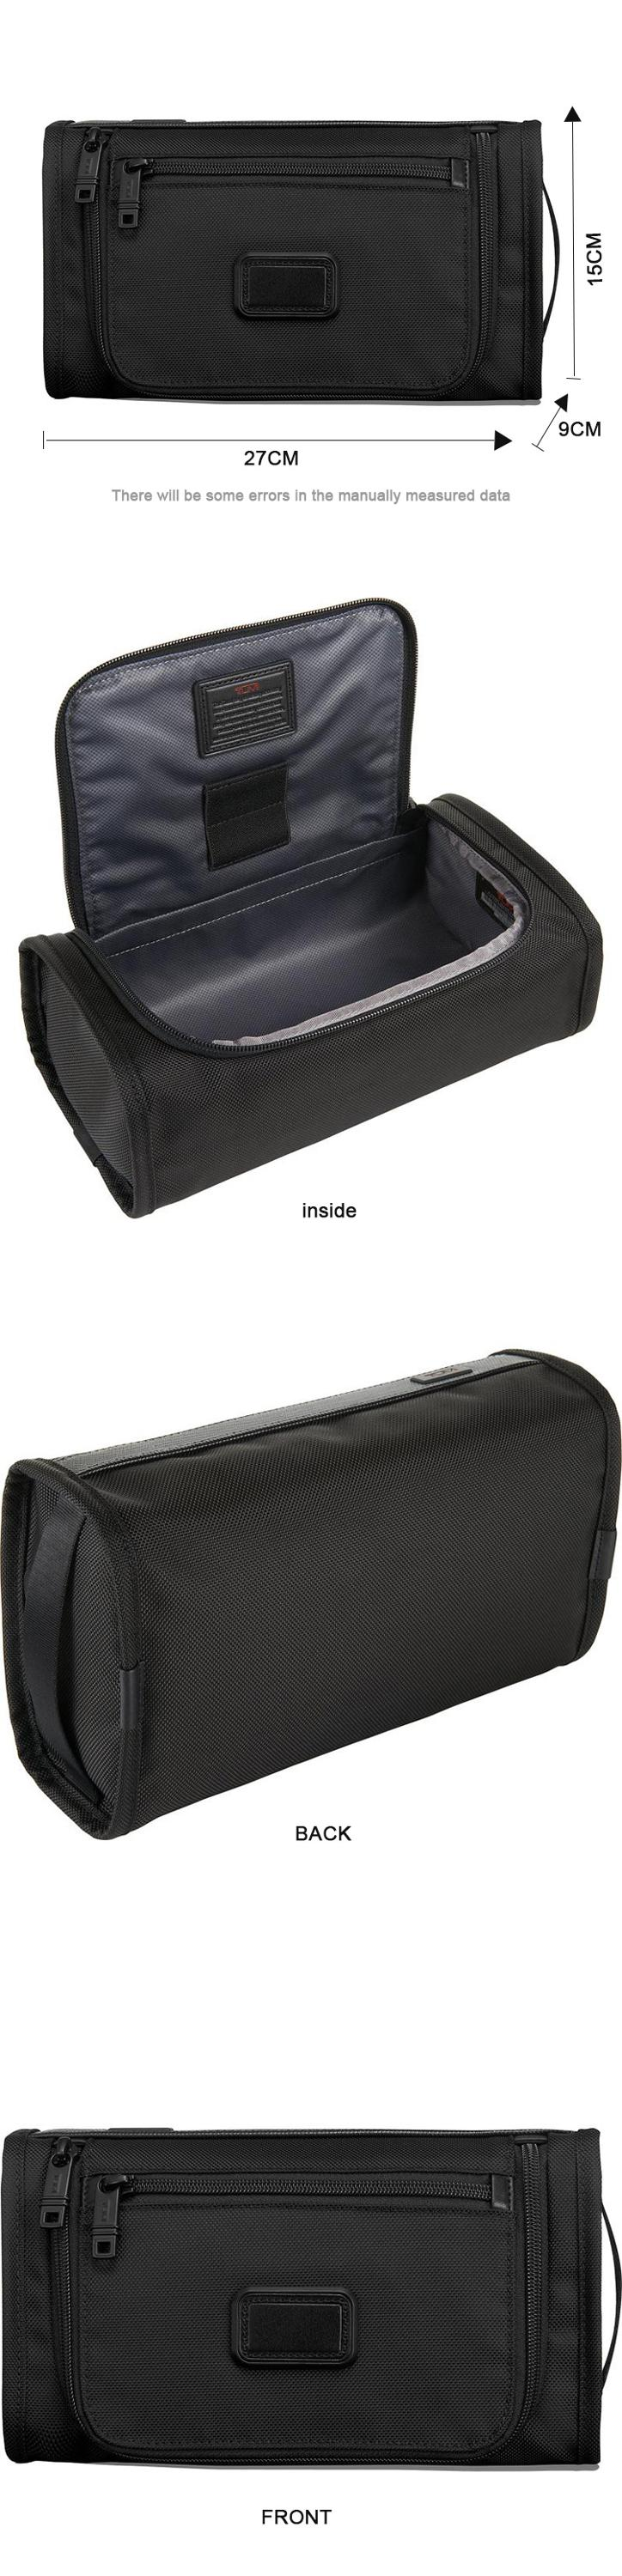 Larger capacity travel toiletries case unsex high quality nylon make up bag professional custom logo toiletry bag